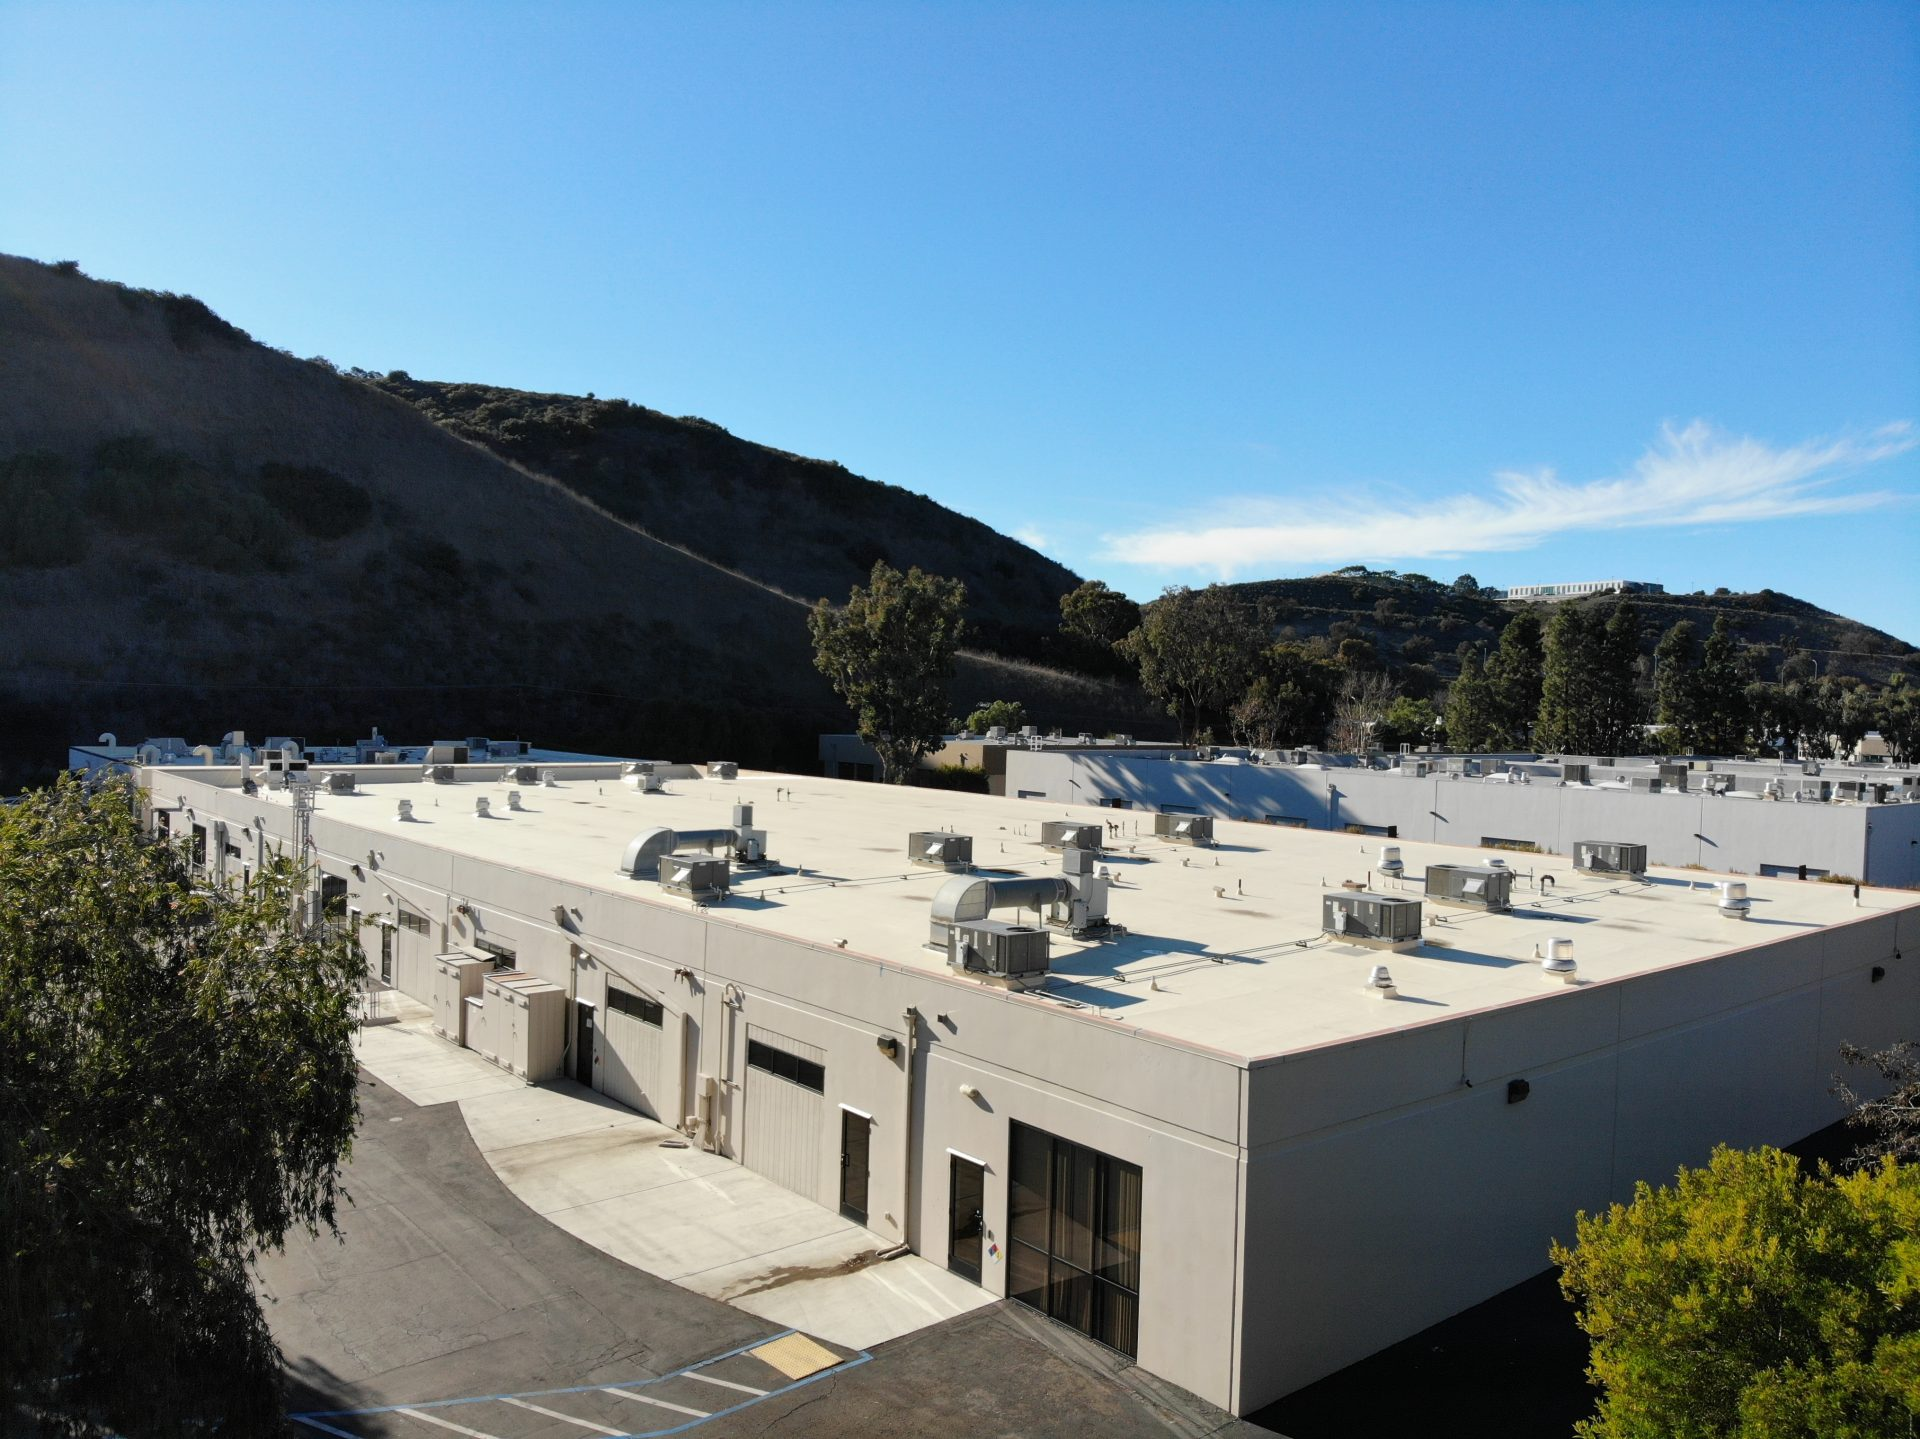 Picture of Warehouse Building Roofing Project